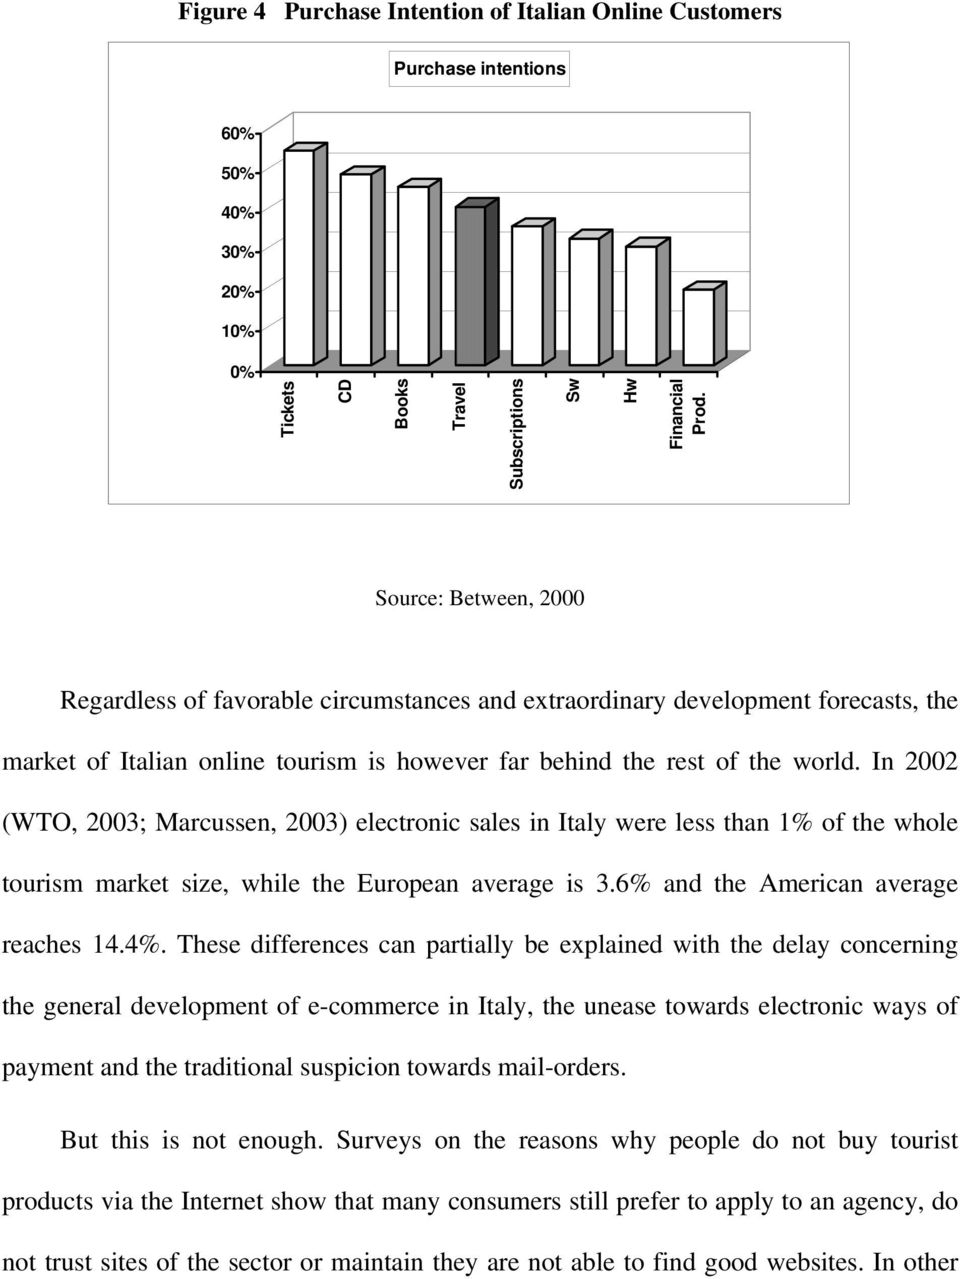 In 2002 (WTO, 2003; Marcussen, 2003) electronic sales in Italy were less than 1% of the whole tourism market size, while the European average is 3.6% and the American average reaches 14.4%.